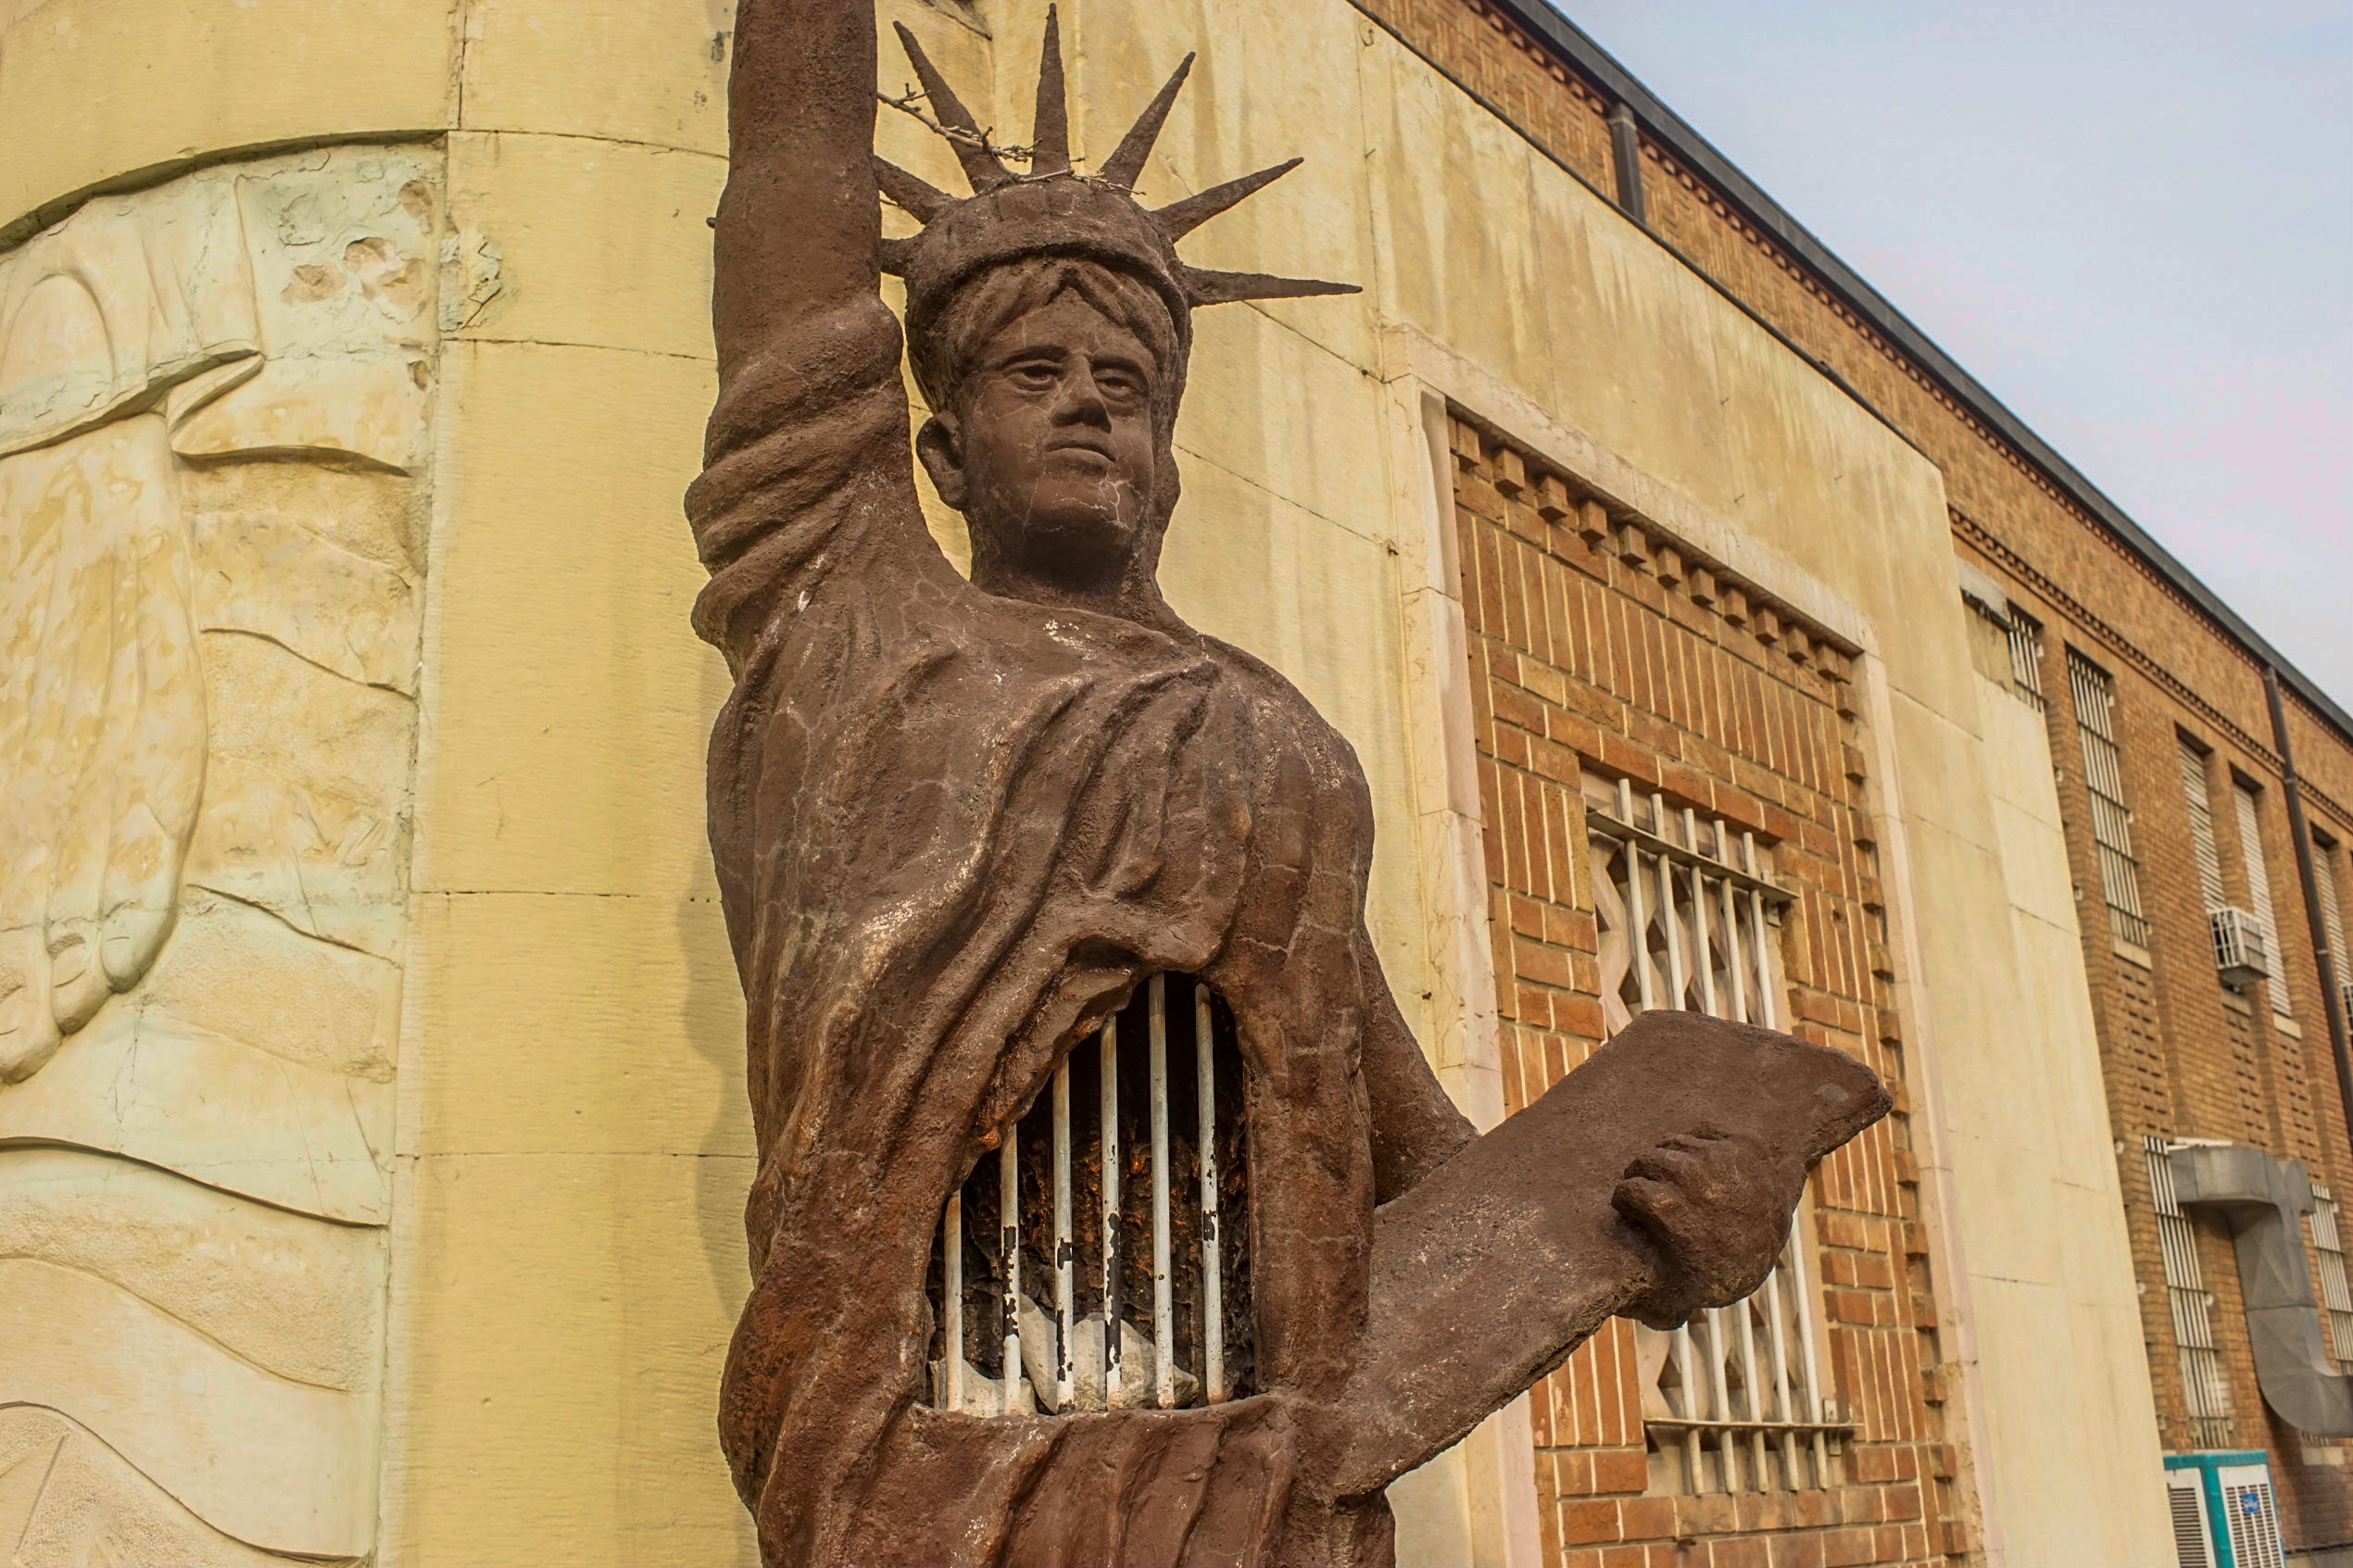 The second anti-American statue outside the main entrance. Here, the Statue of Liberty's gown opens to reveal two imprisoned white birds.